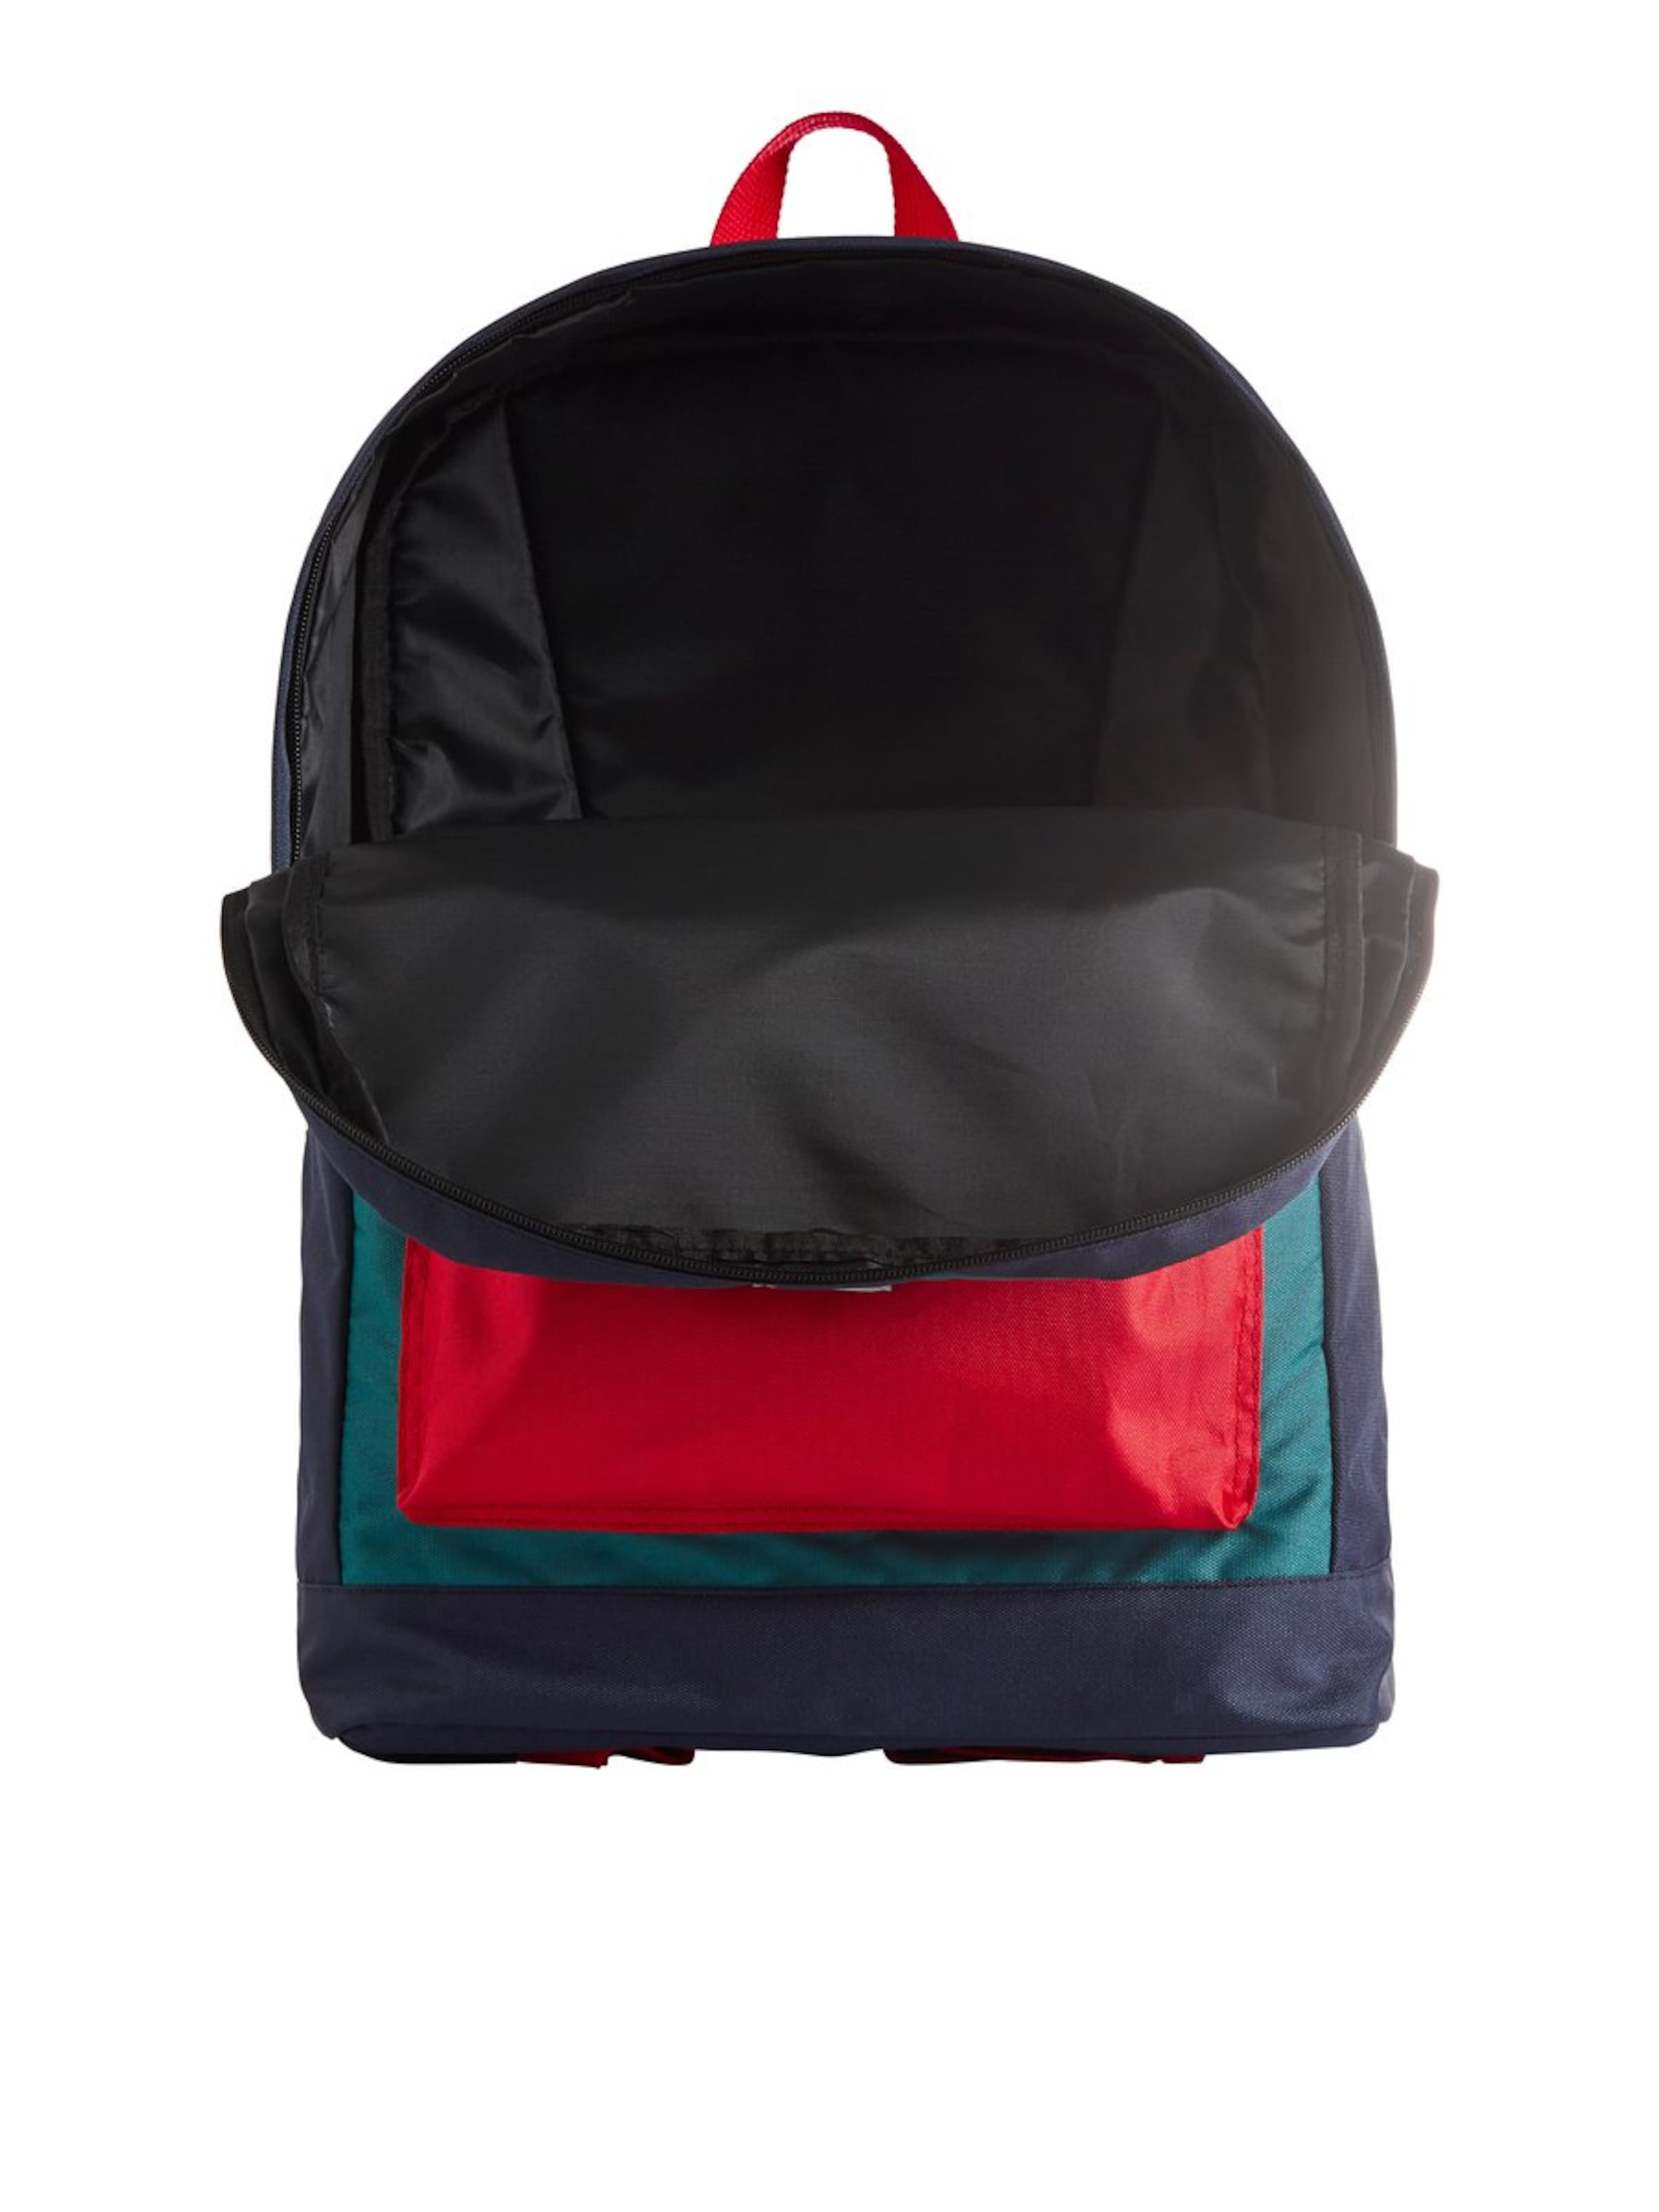 Jackamp; Rot Jones Rucksack In TürkisUltramarinblau 54L3ARj